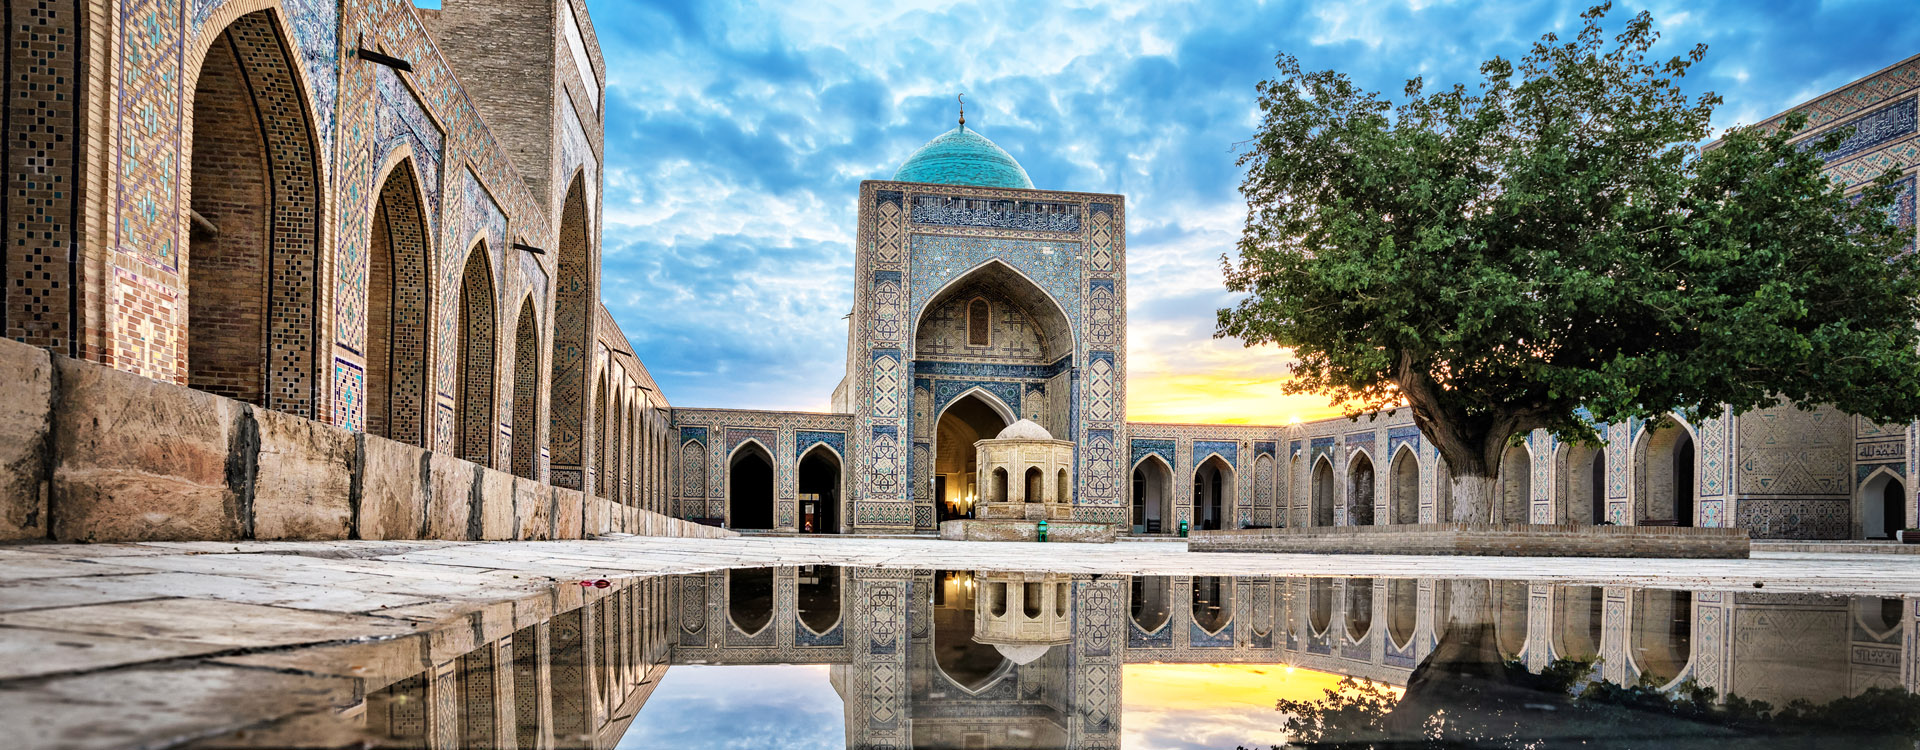 Inner courtyard of the Kalyan Mosque, part of the Po-i-Kalyan Complex in Bukhara, Uzbekistan